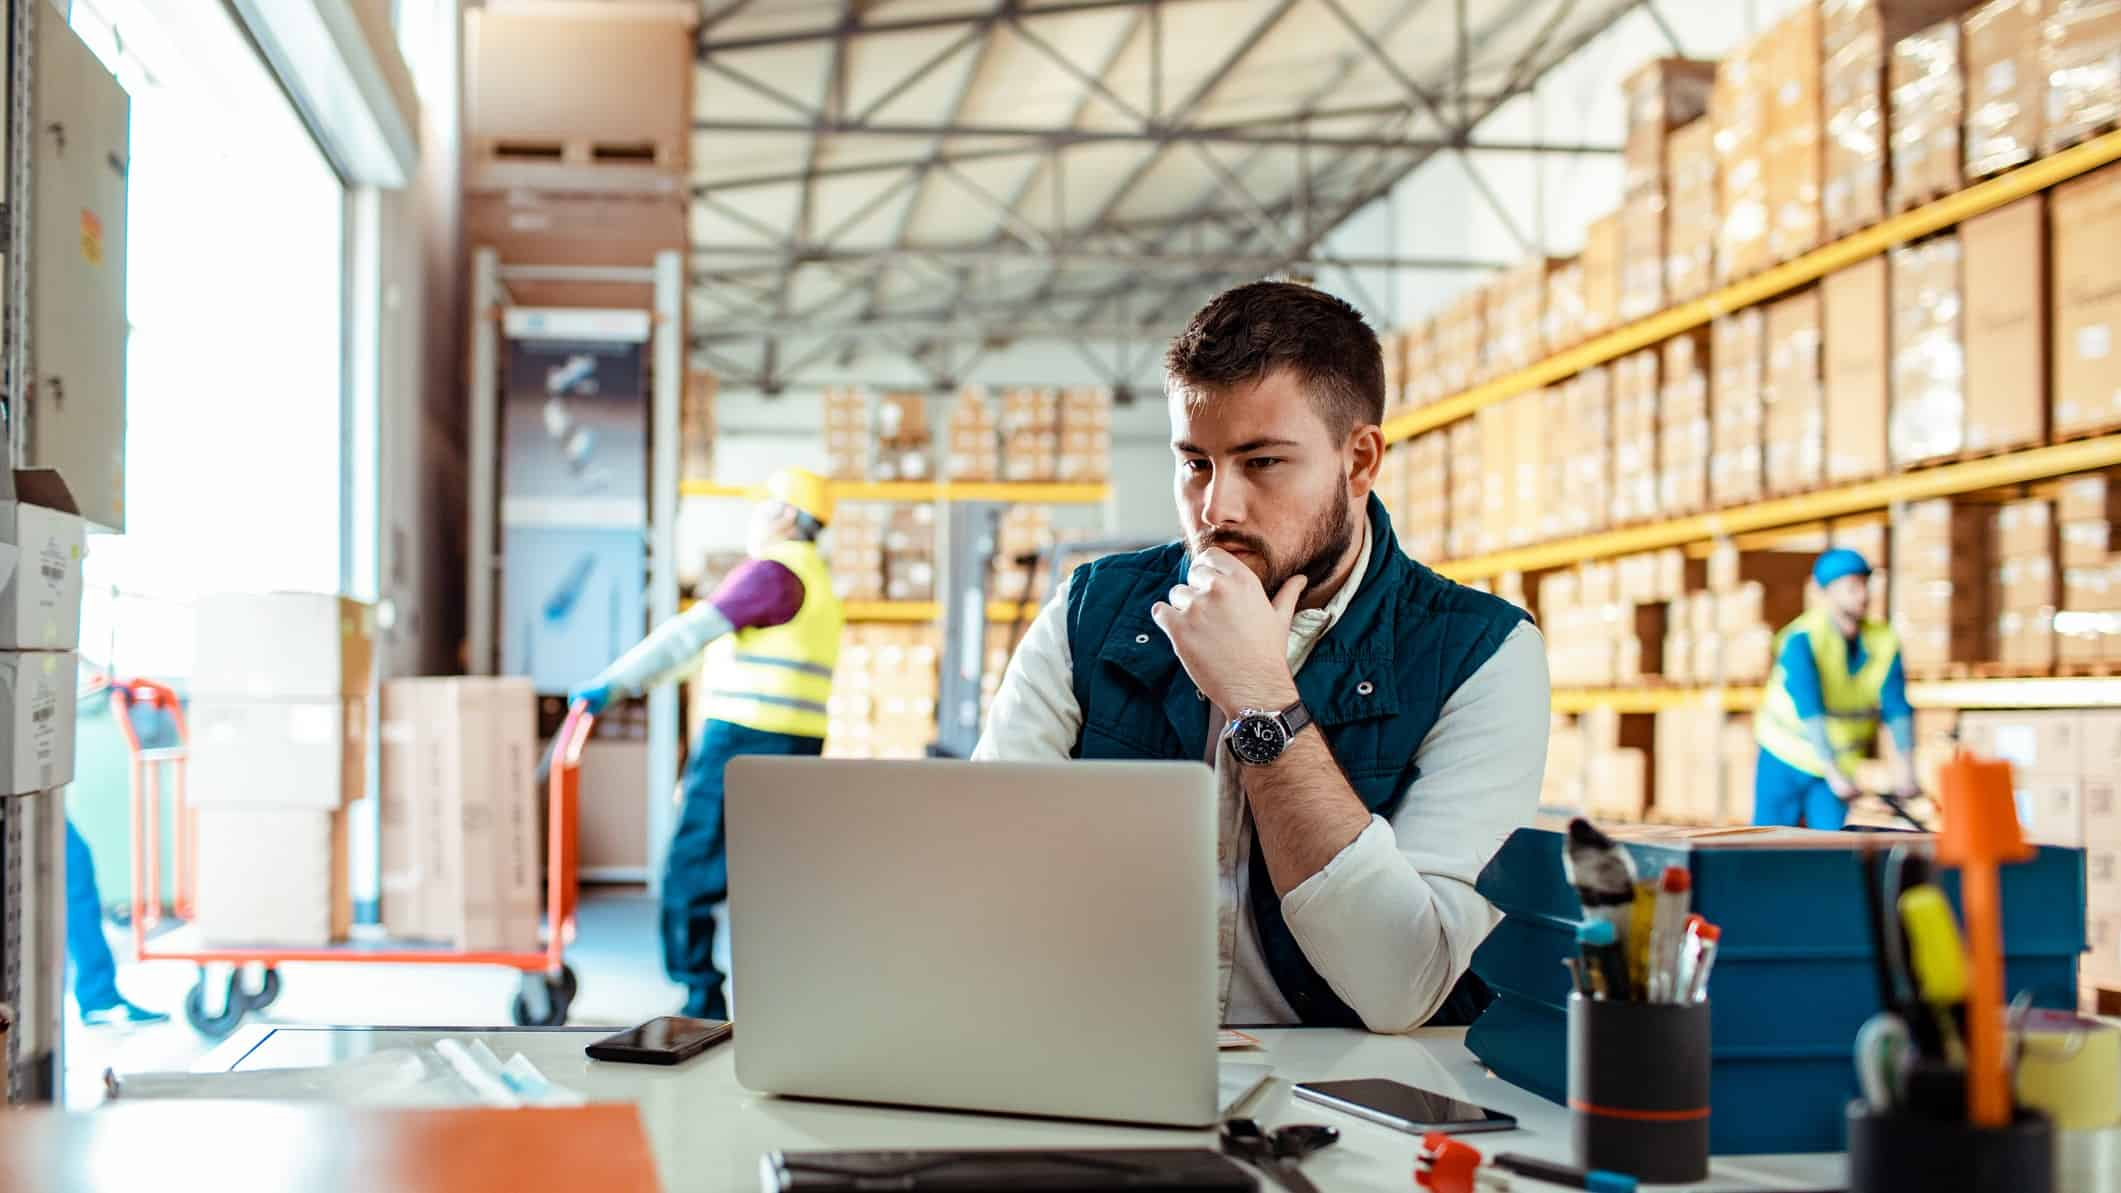 A warehouse manager sits at a desk in a warehouse looking at his computer